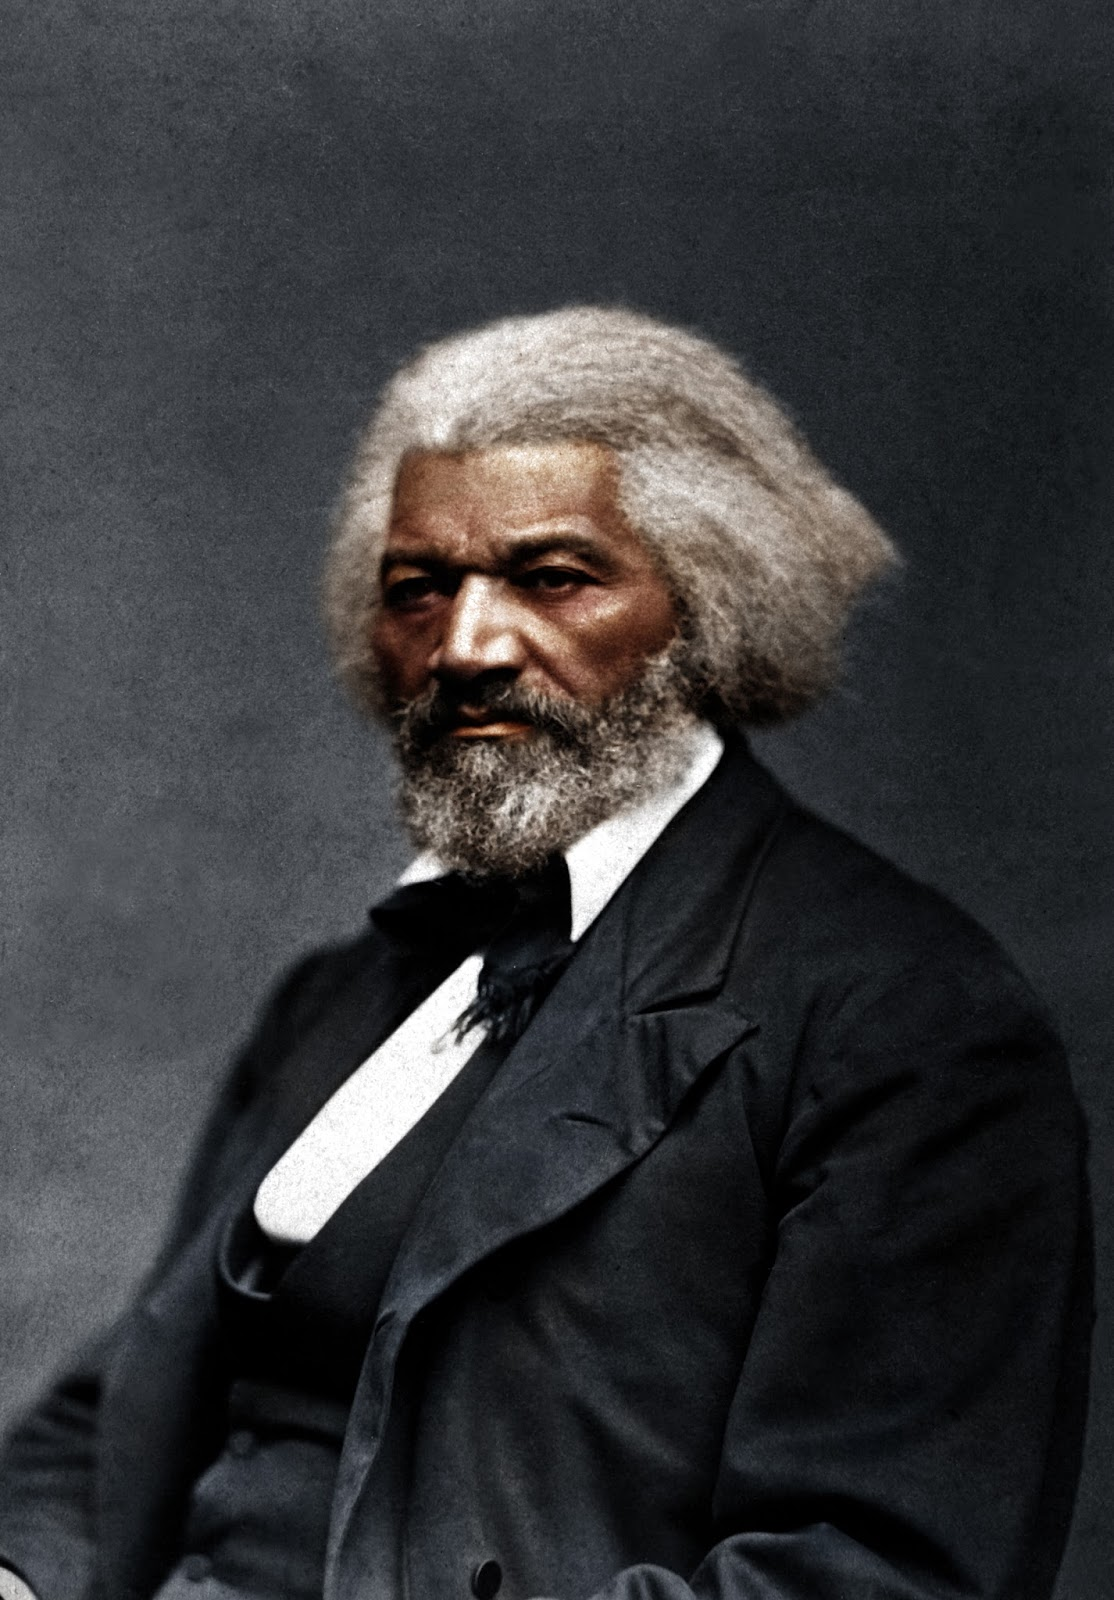 a look into the life of frederick douglass Actress alfre woodard narrates this look at the life of frederick douglass, an influential 19th century civil rights activist as this pbs program unfolds, viewers.